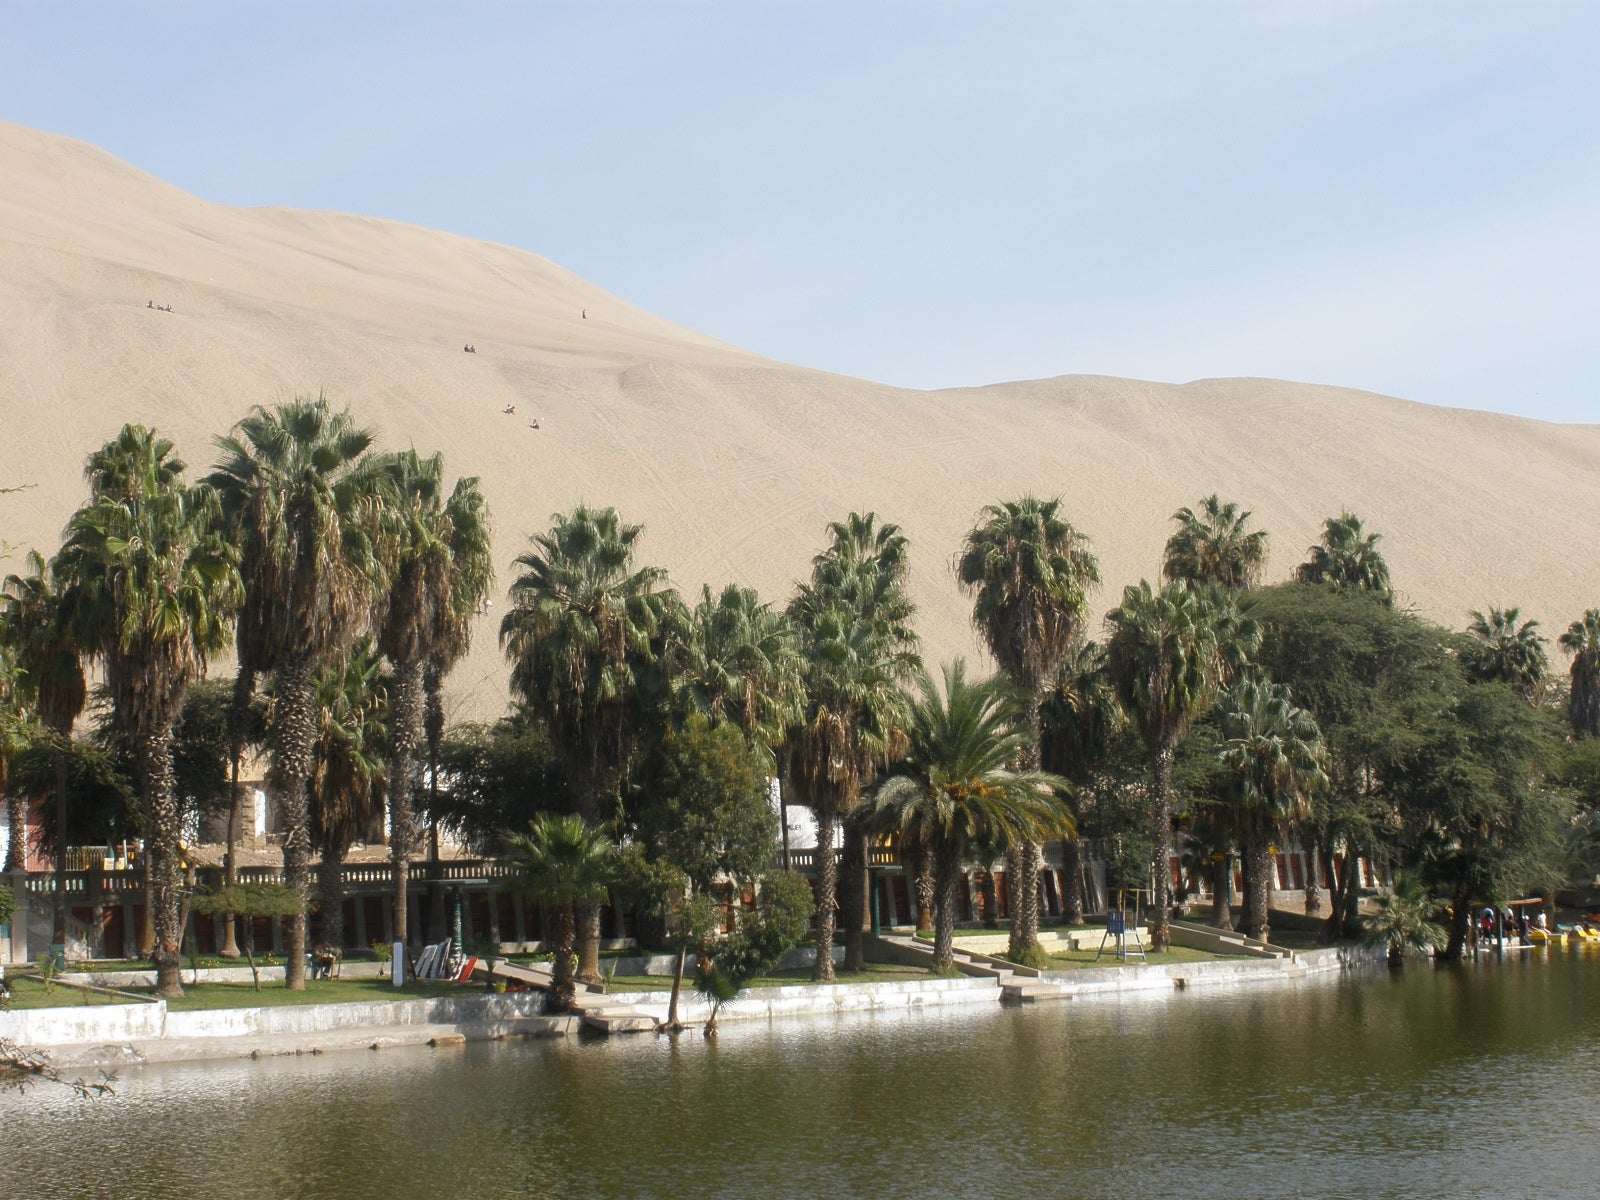 Embalse en Oasis de Huacachina